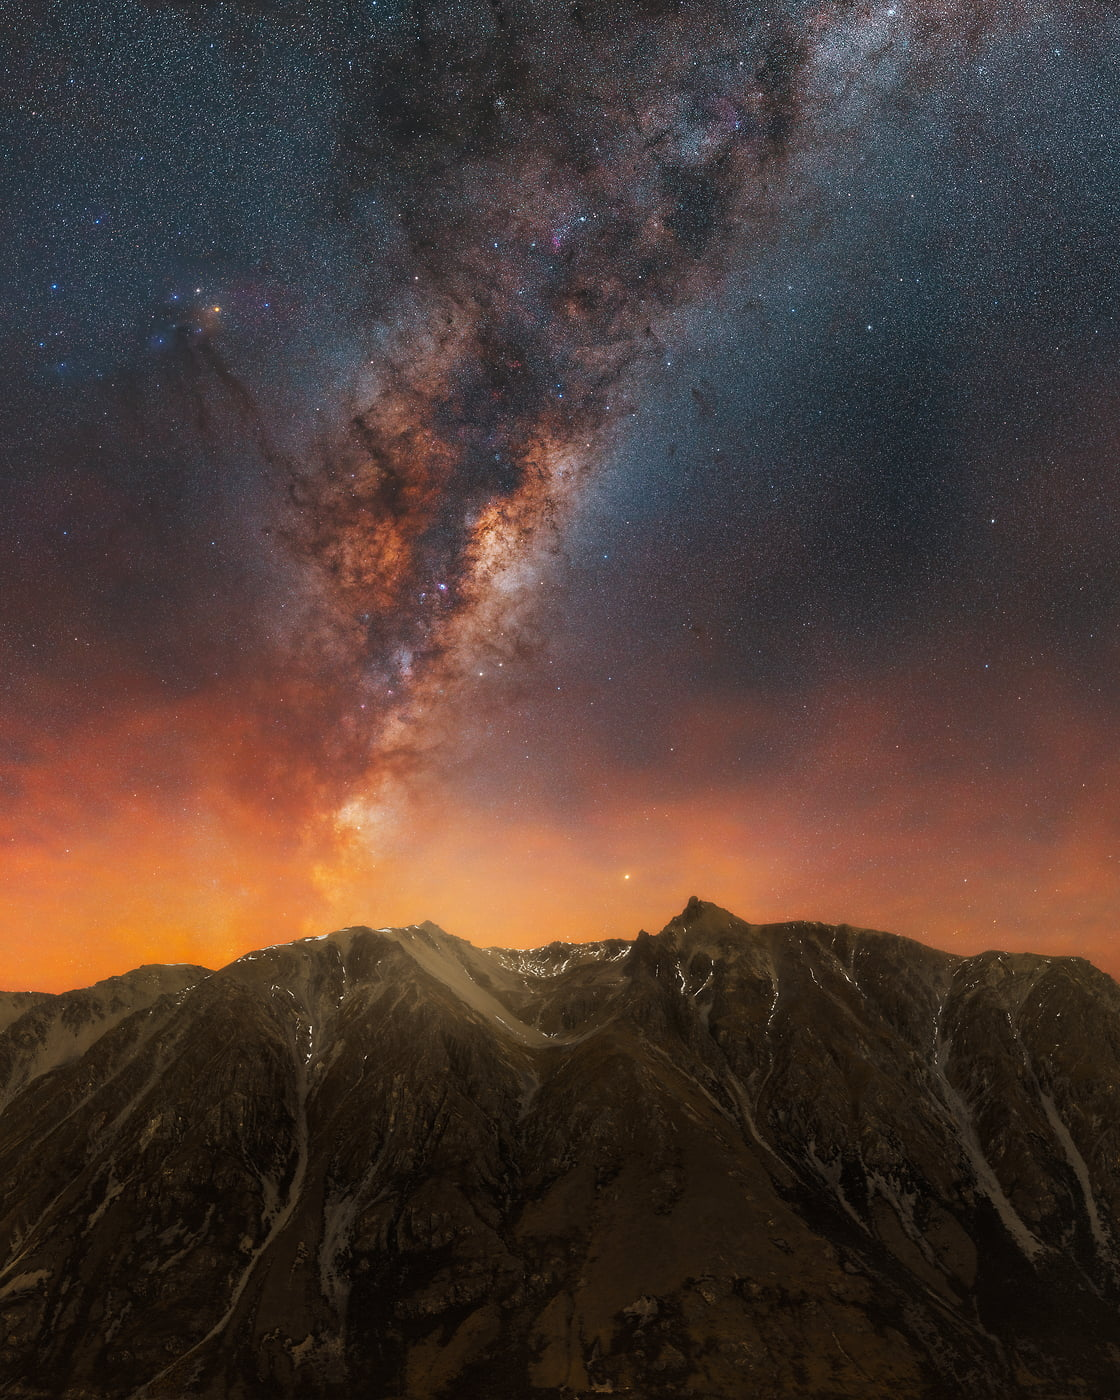 511 megapixels! A very high resolution, large-format VAST photo print of the Milky Way with stars above a beautiful mountain landscape; fine art astrophotography landscape photograph created by Paul Wilson in New Zealand